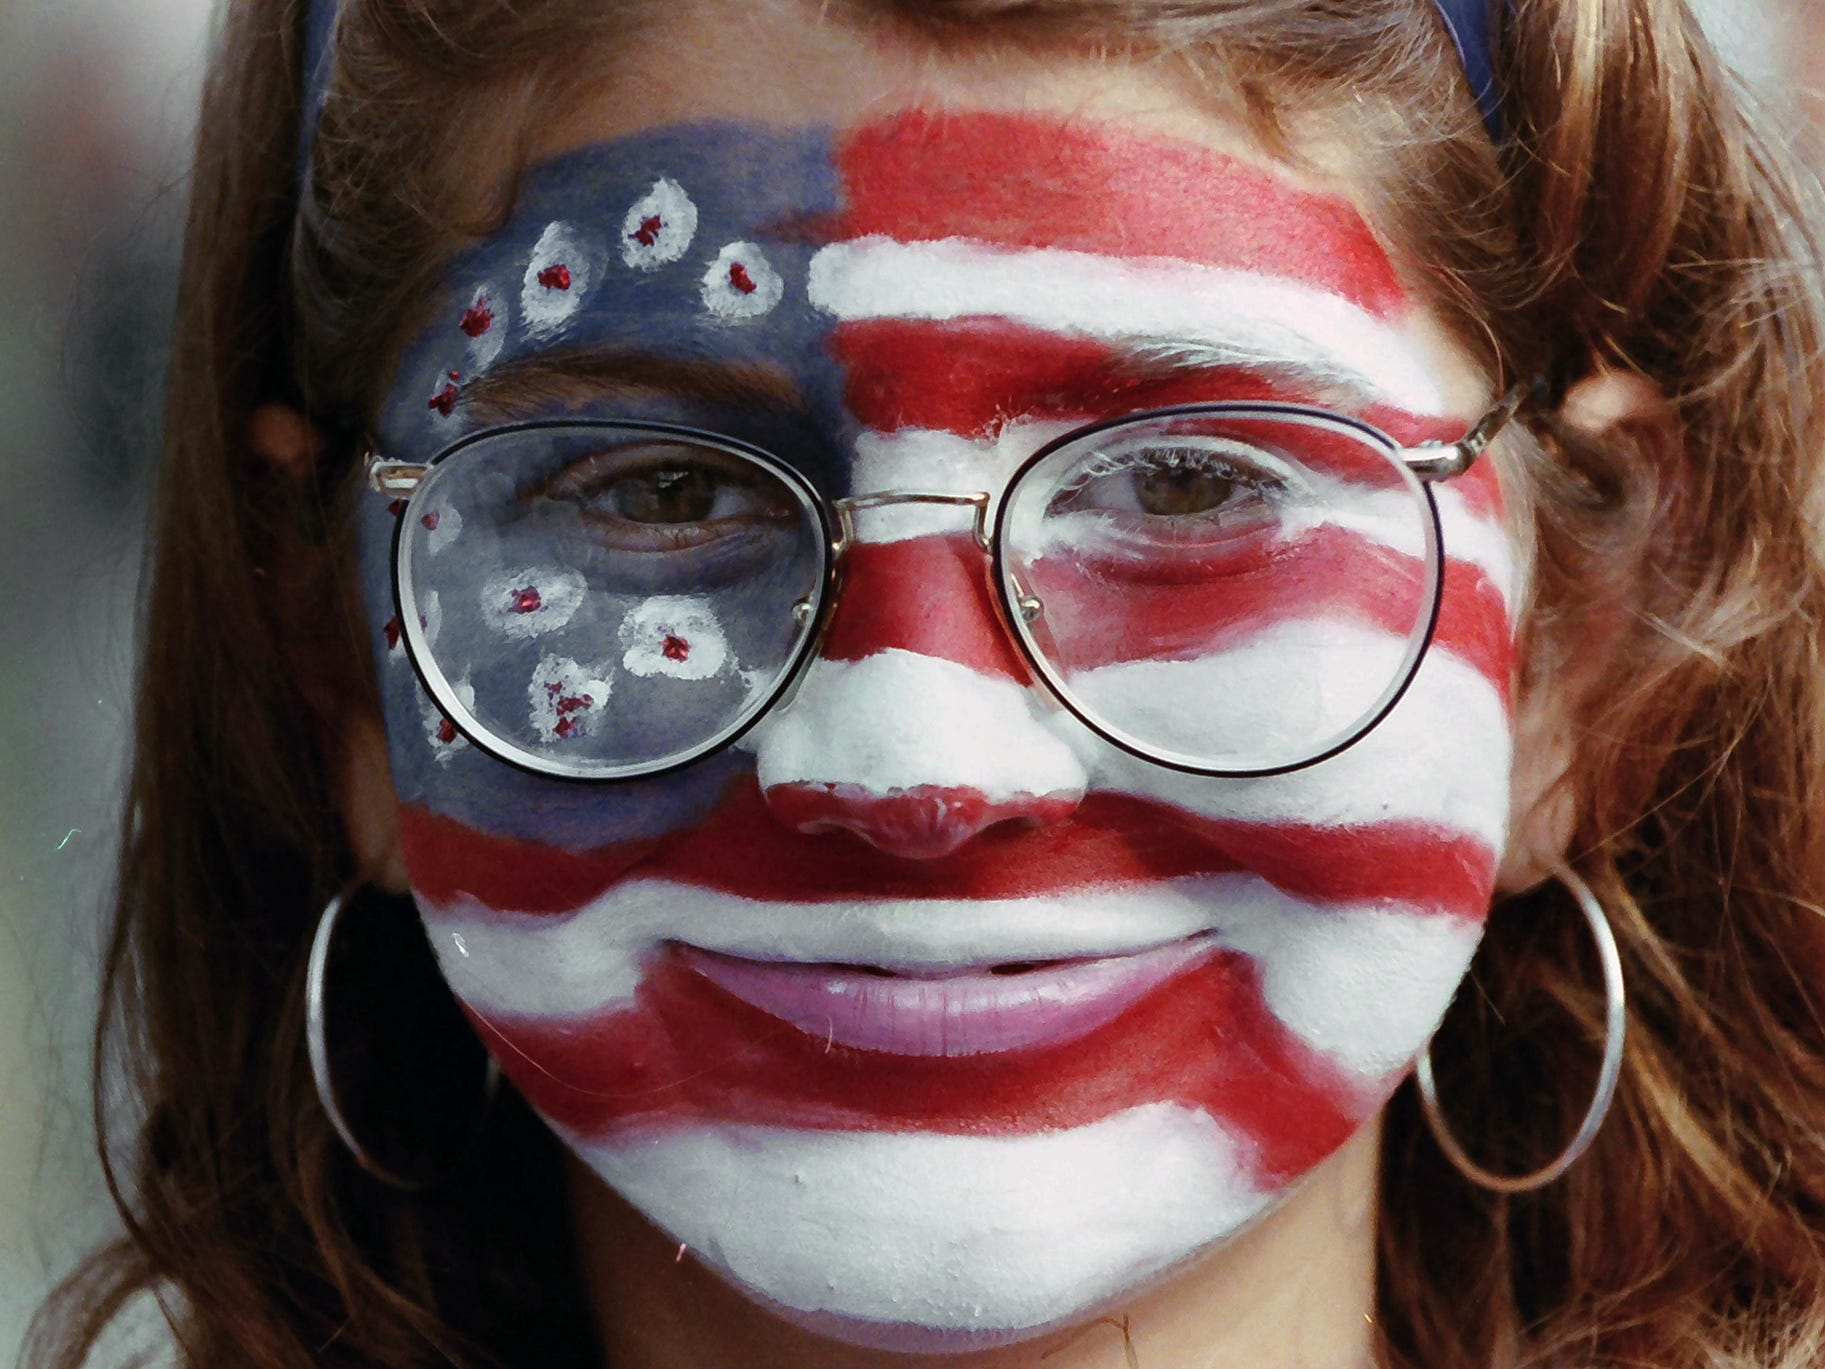 A  Clinton supporter with an American flag painted on her face during a visit to York July 18, 1992. Hillary Clinton and Tipper Gore accompanied their husbands, Dem nominees Bill Clinton and Al Gore, on a 1,000-mile bus trip after winning their party's nod in July 1992.